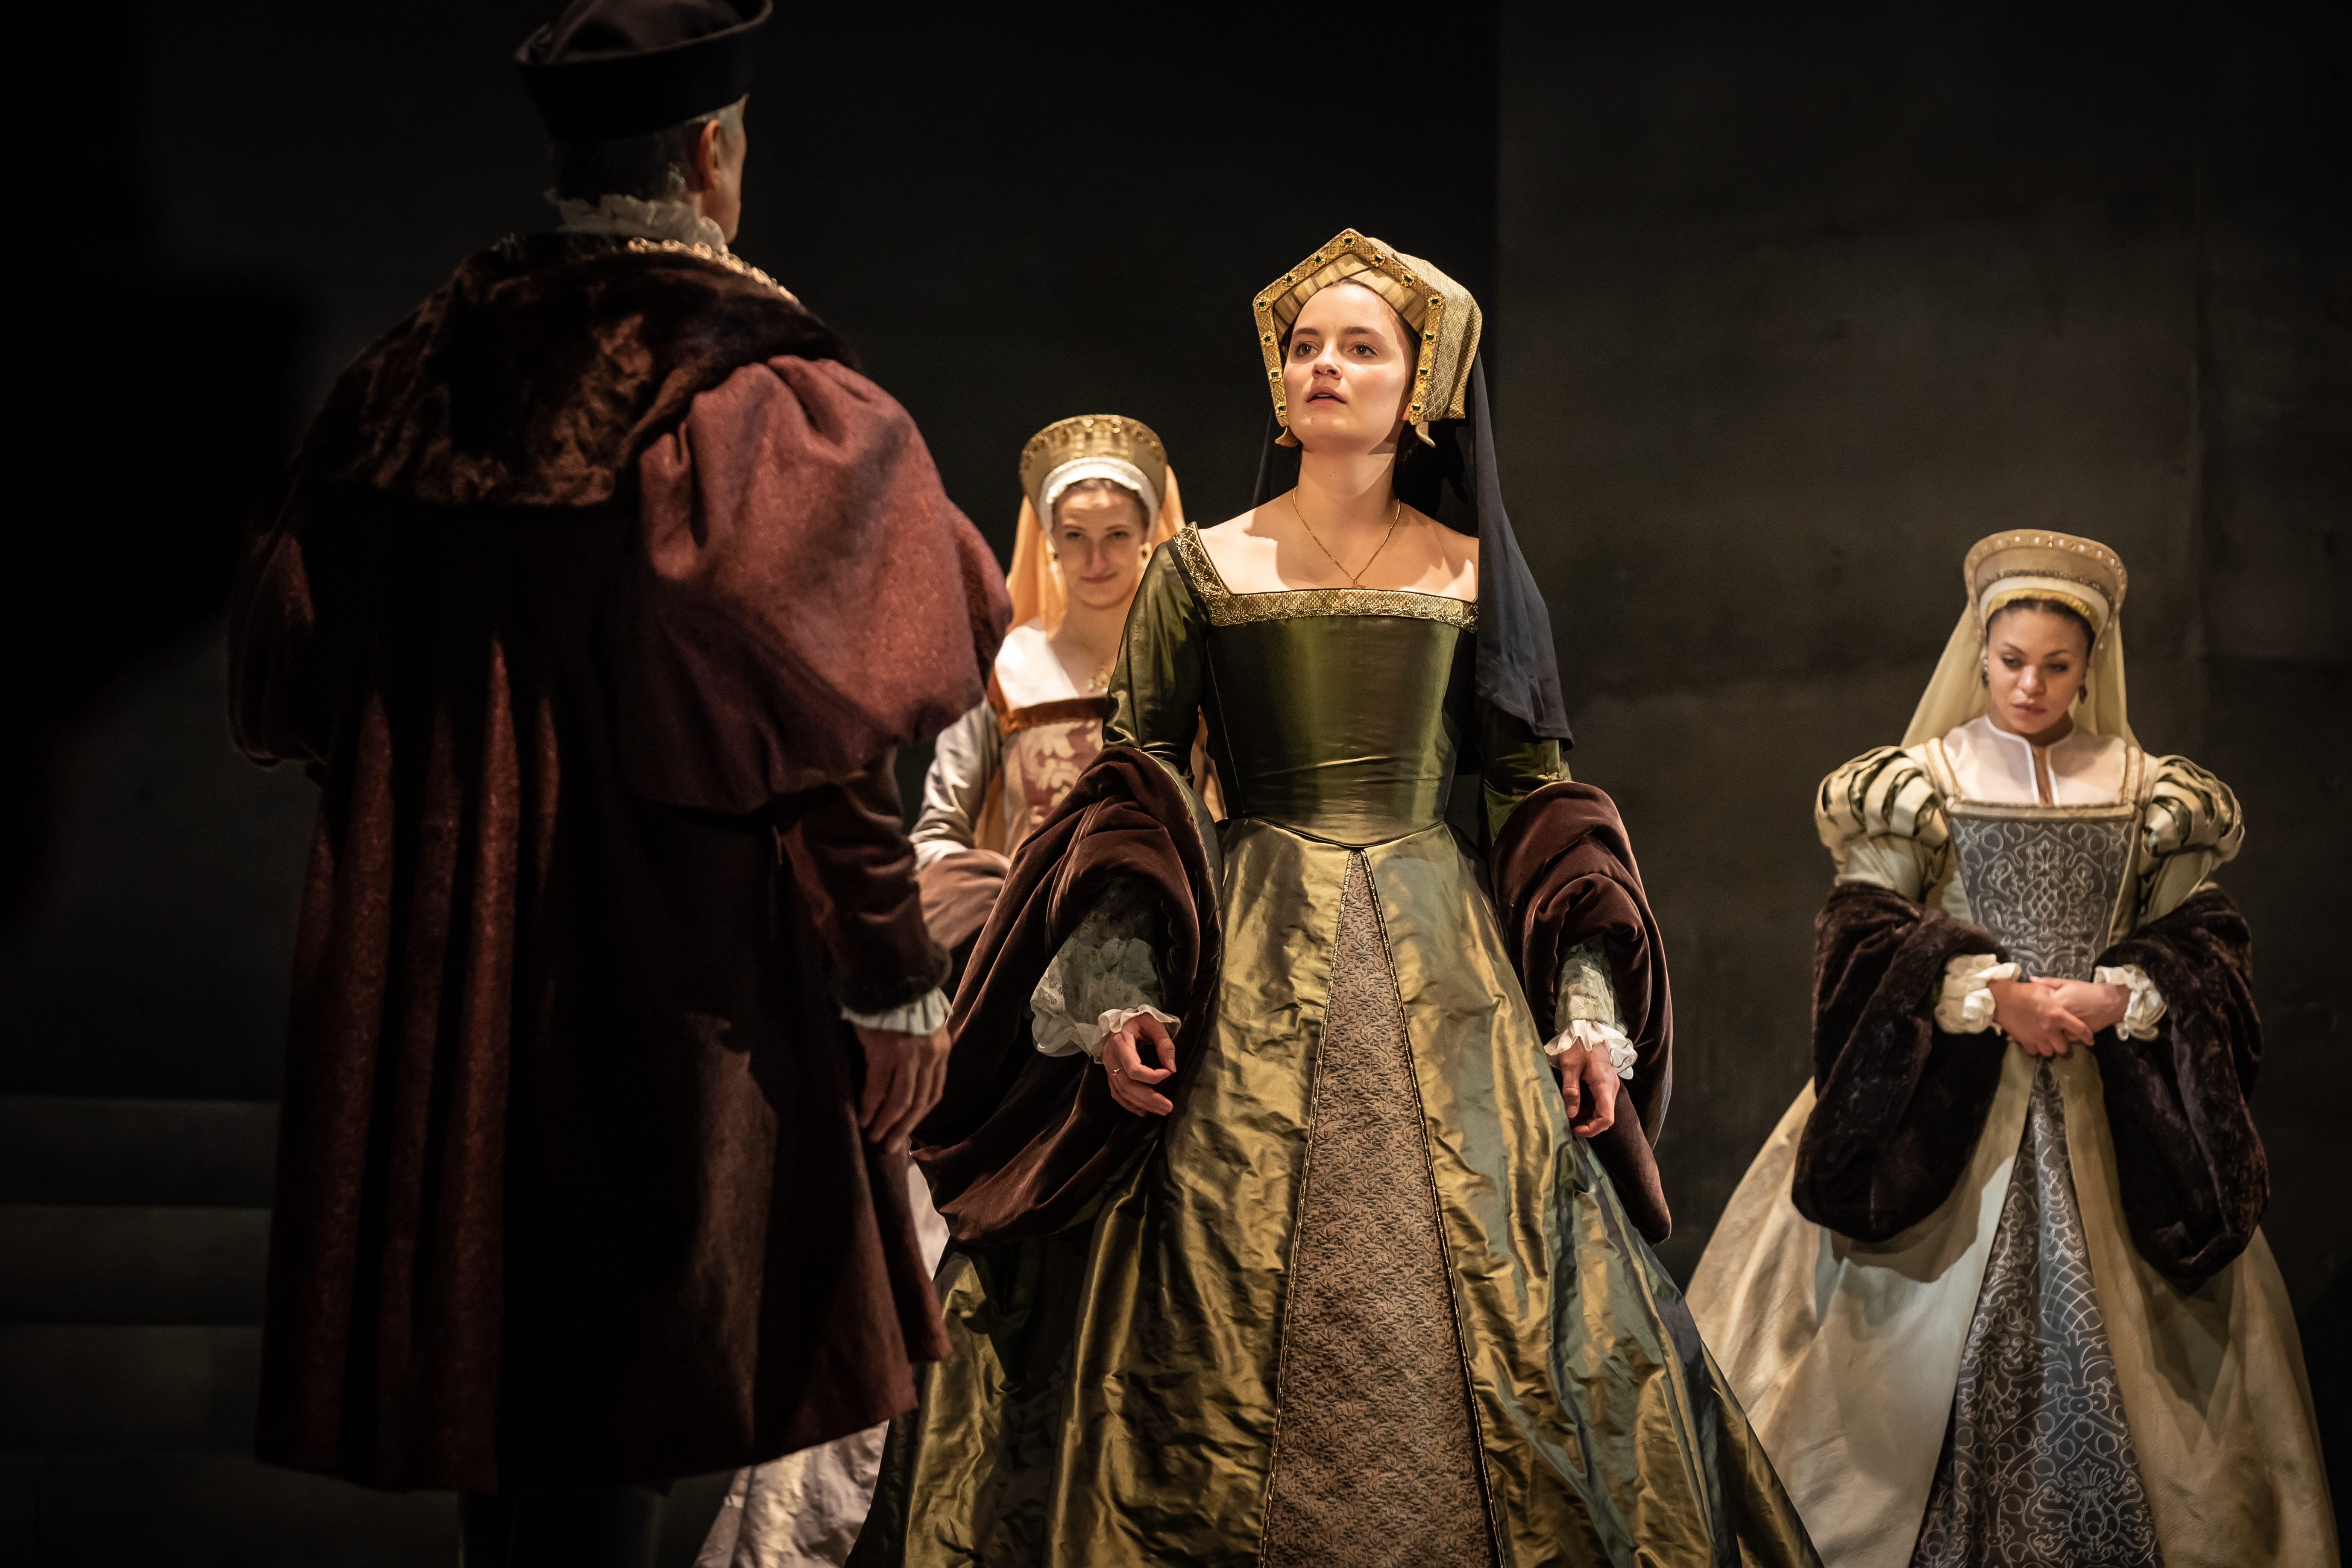 Rosanna Adams as Anna of Cleves (Centre) and Company in The Mirror and the Light - Photo by Marc Brenner